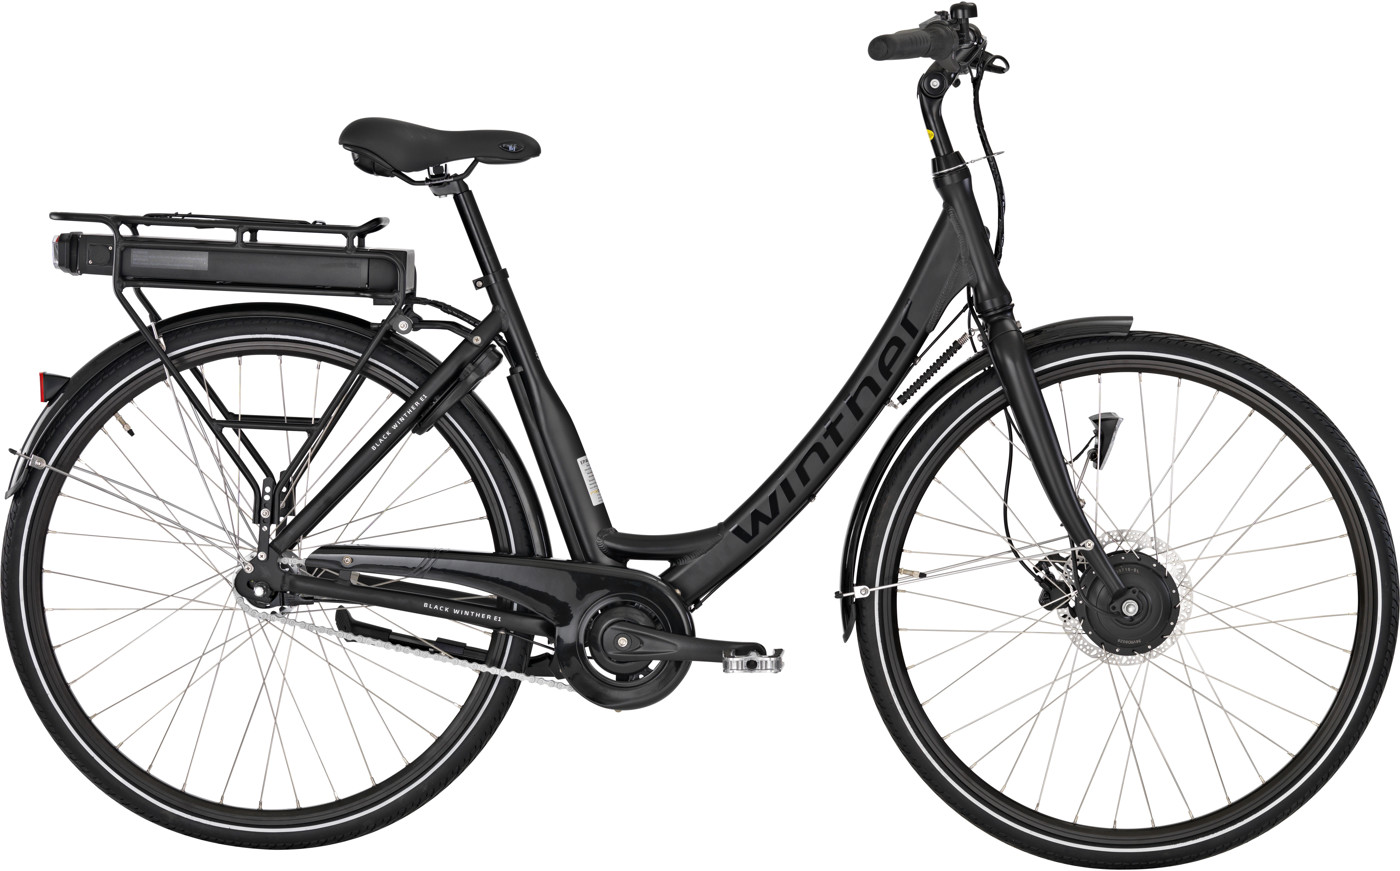 Black Winther E1 Dame 5 LED-display Nex 7g FodHydr. 50cm Matsort m. sort U. bat 2018 Klassisk Citybike